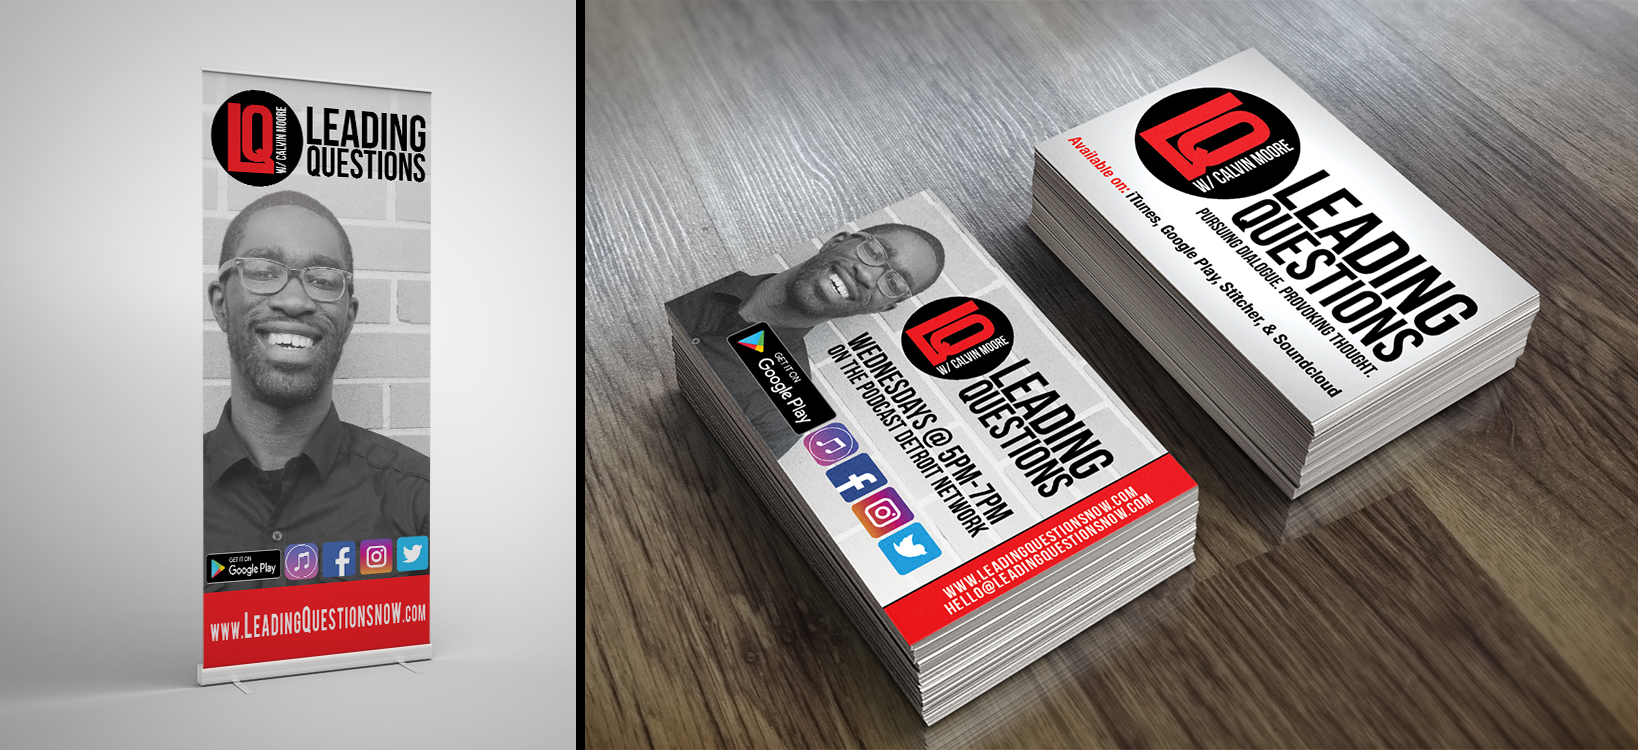 Leading Question w/ Calvin Moore - Business Card & Stand Up Banner Designs